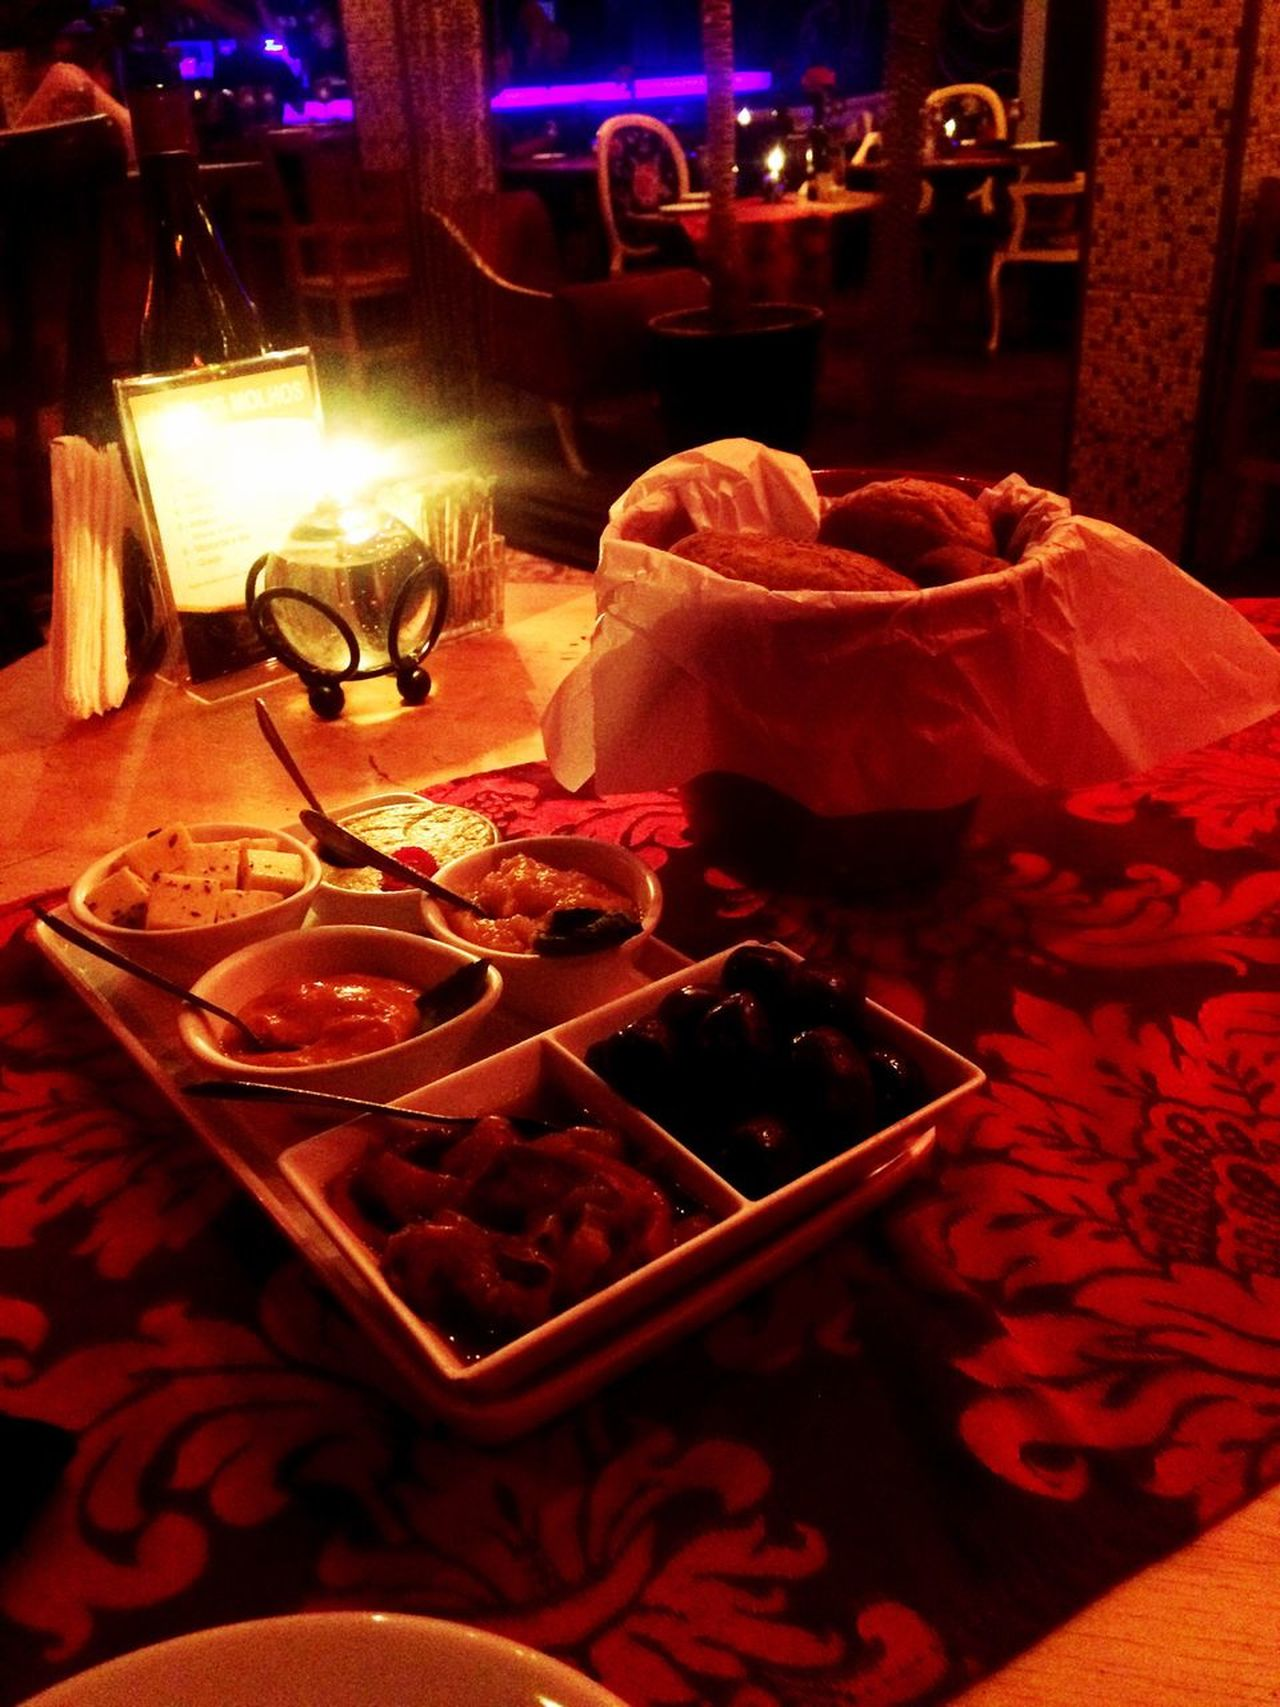 Romantic dinner Close-up No People Food And Drink Freshness Food Indoors  Illuminated Night Flower Ready-to-eat Serving Size Romantic Place Romantic Plate Darkness And Light Dinner For Two